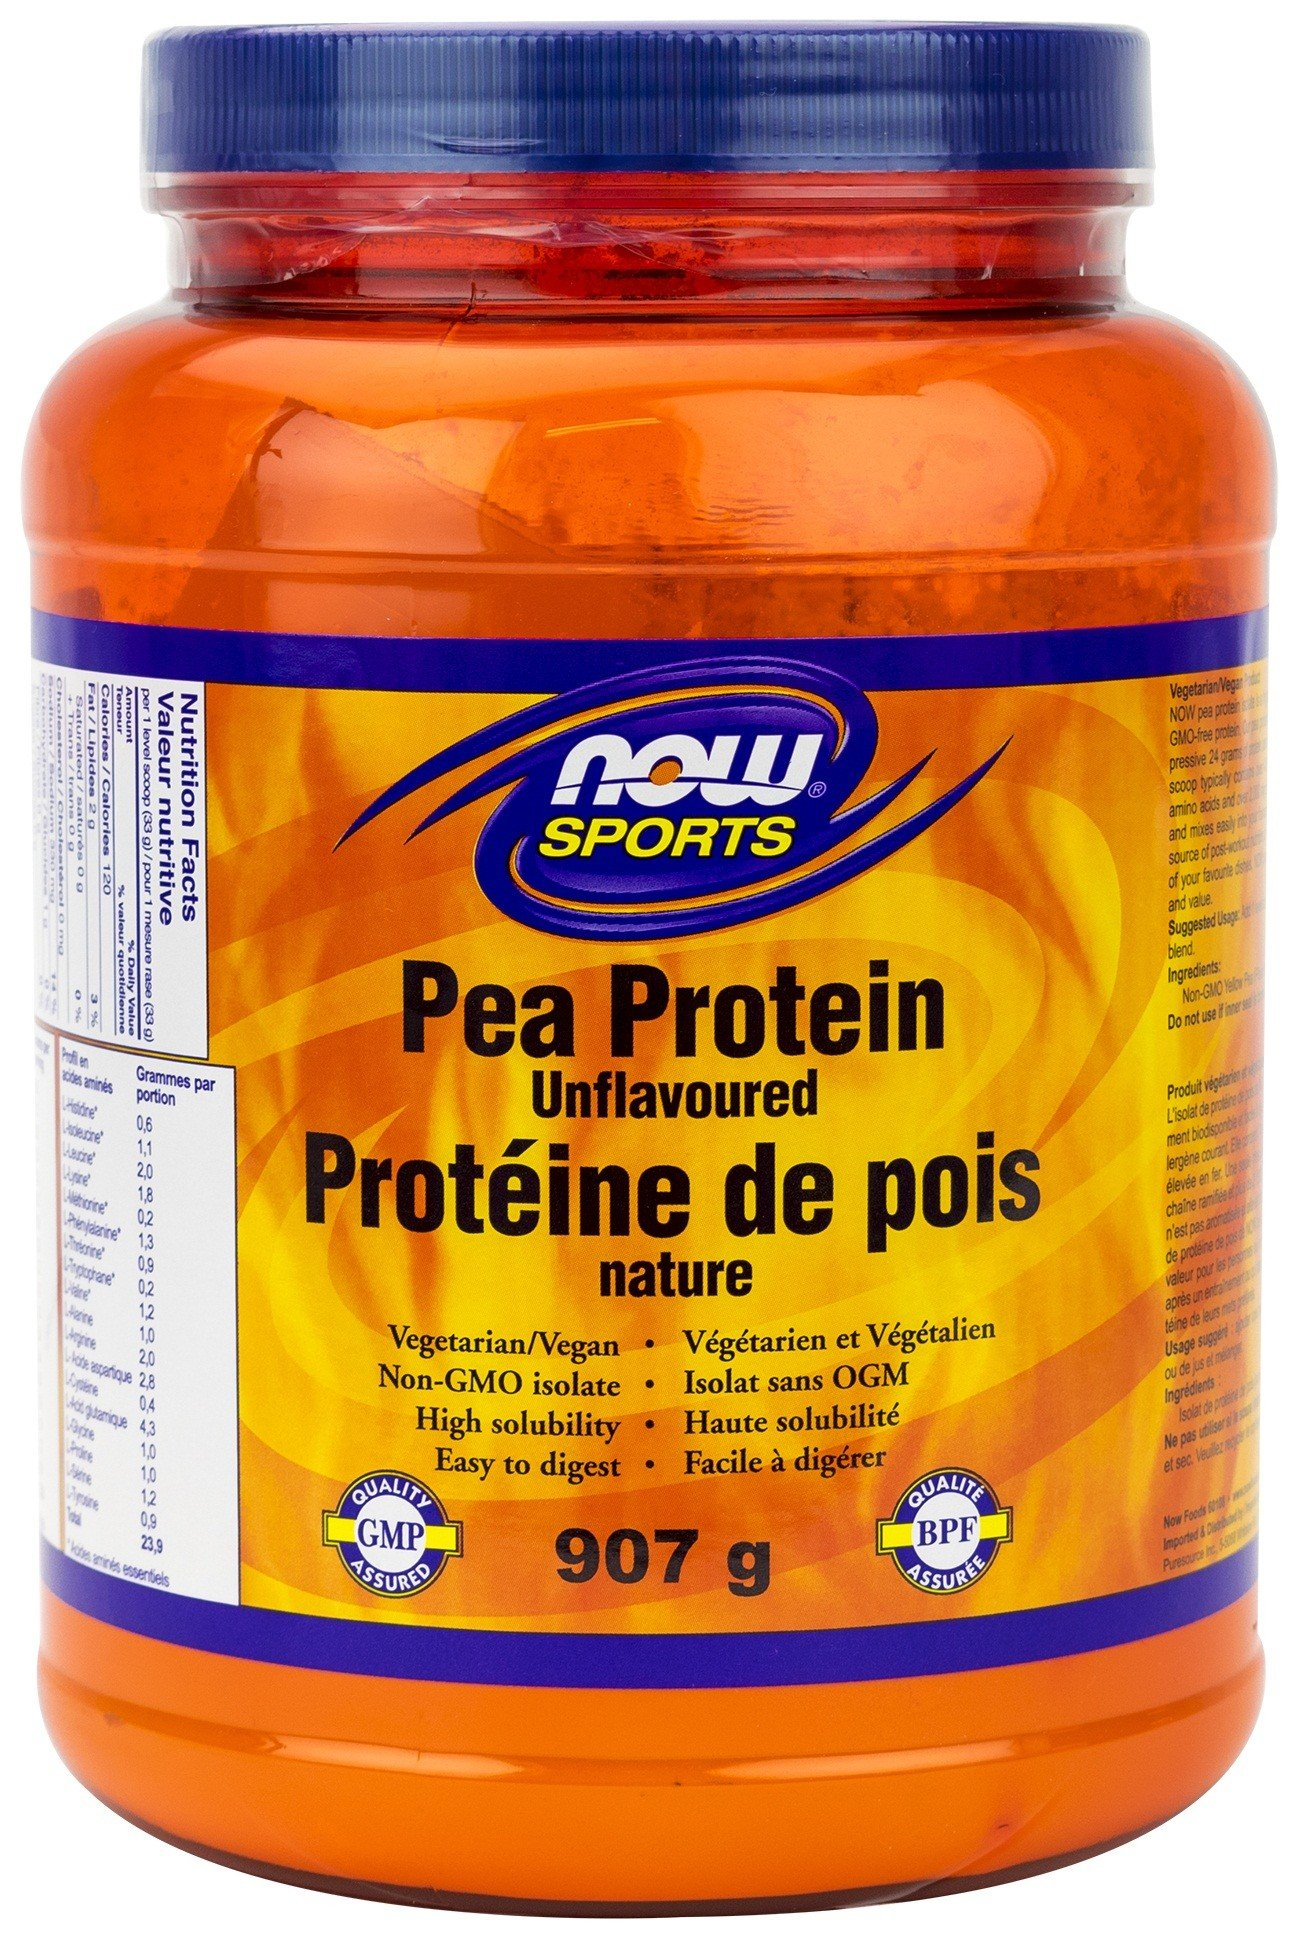 Pea Protein Powder Provides Alternative Protein Source